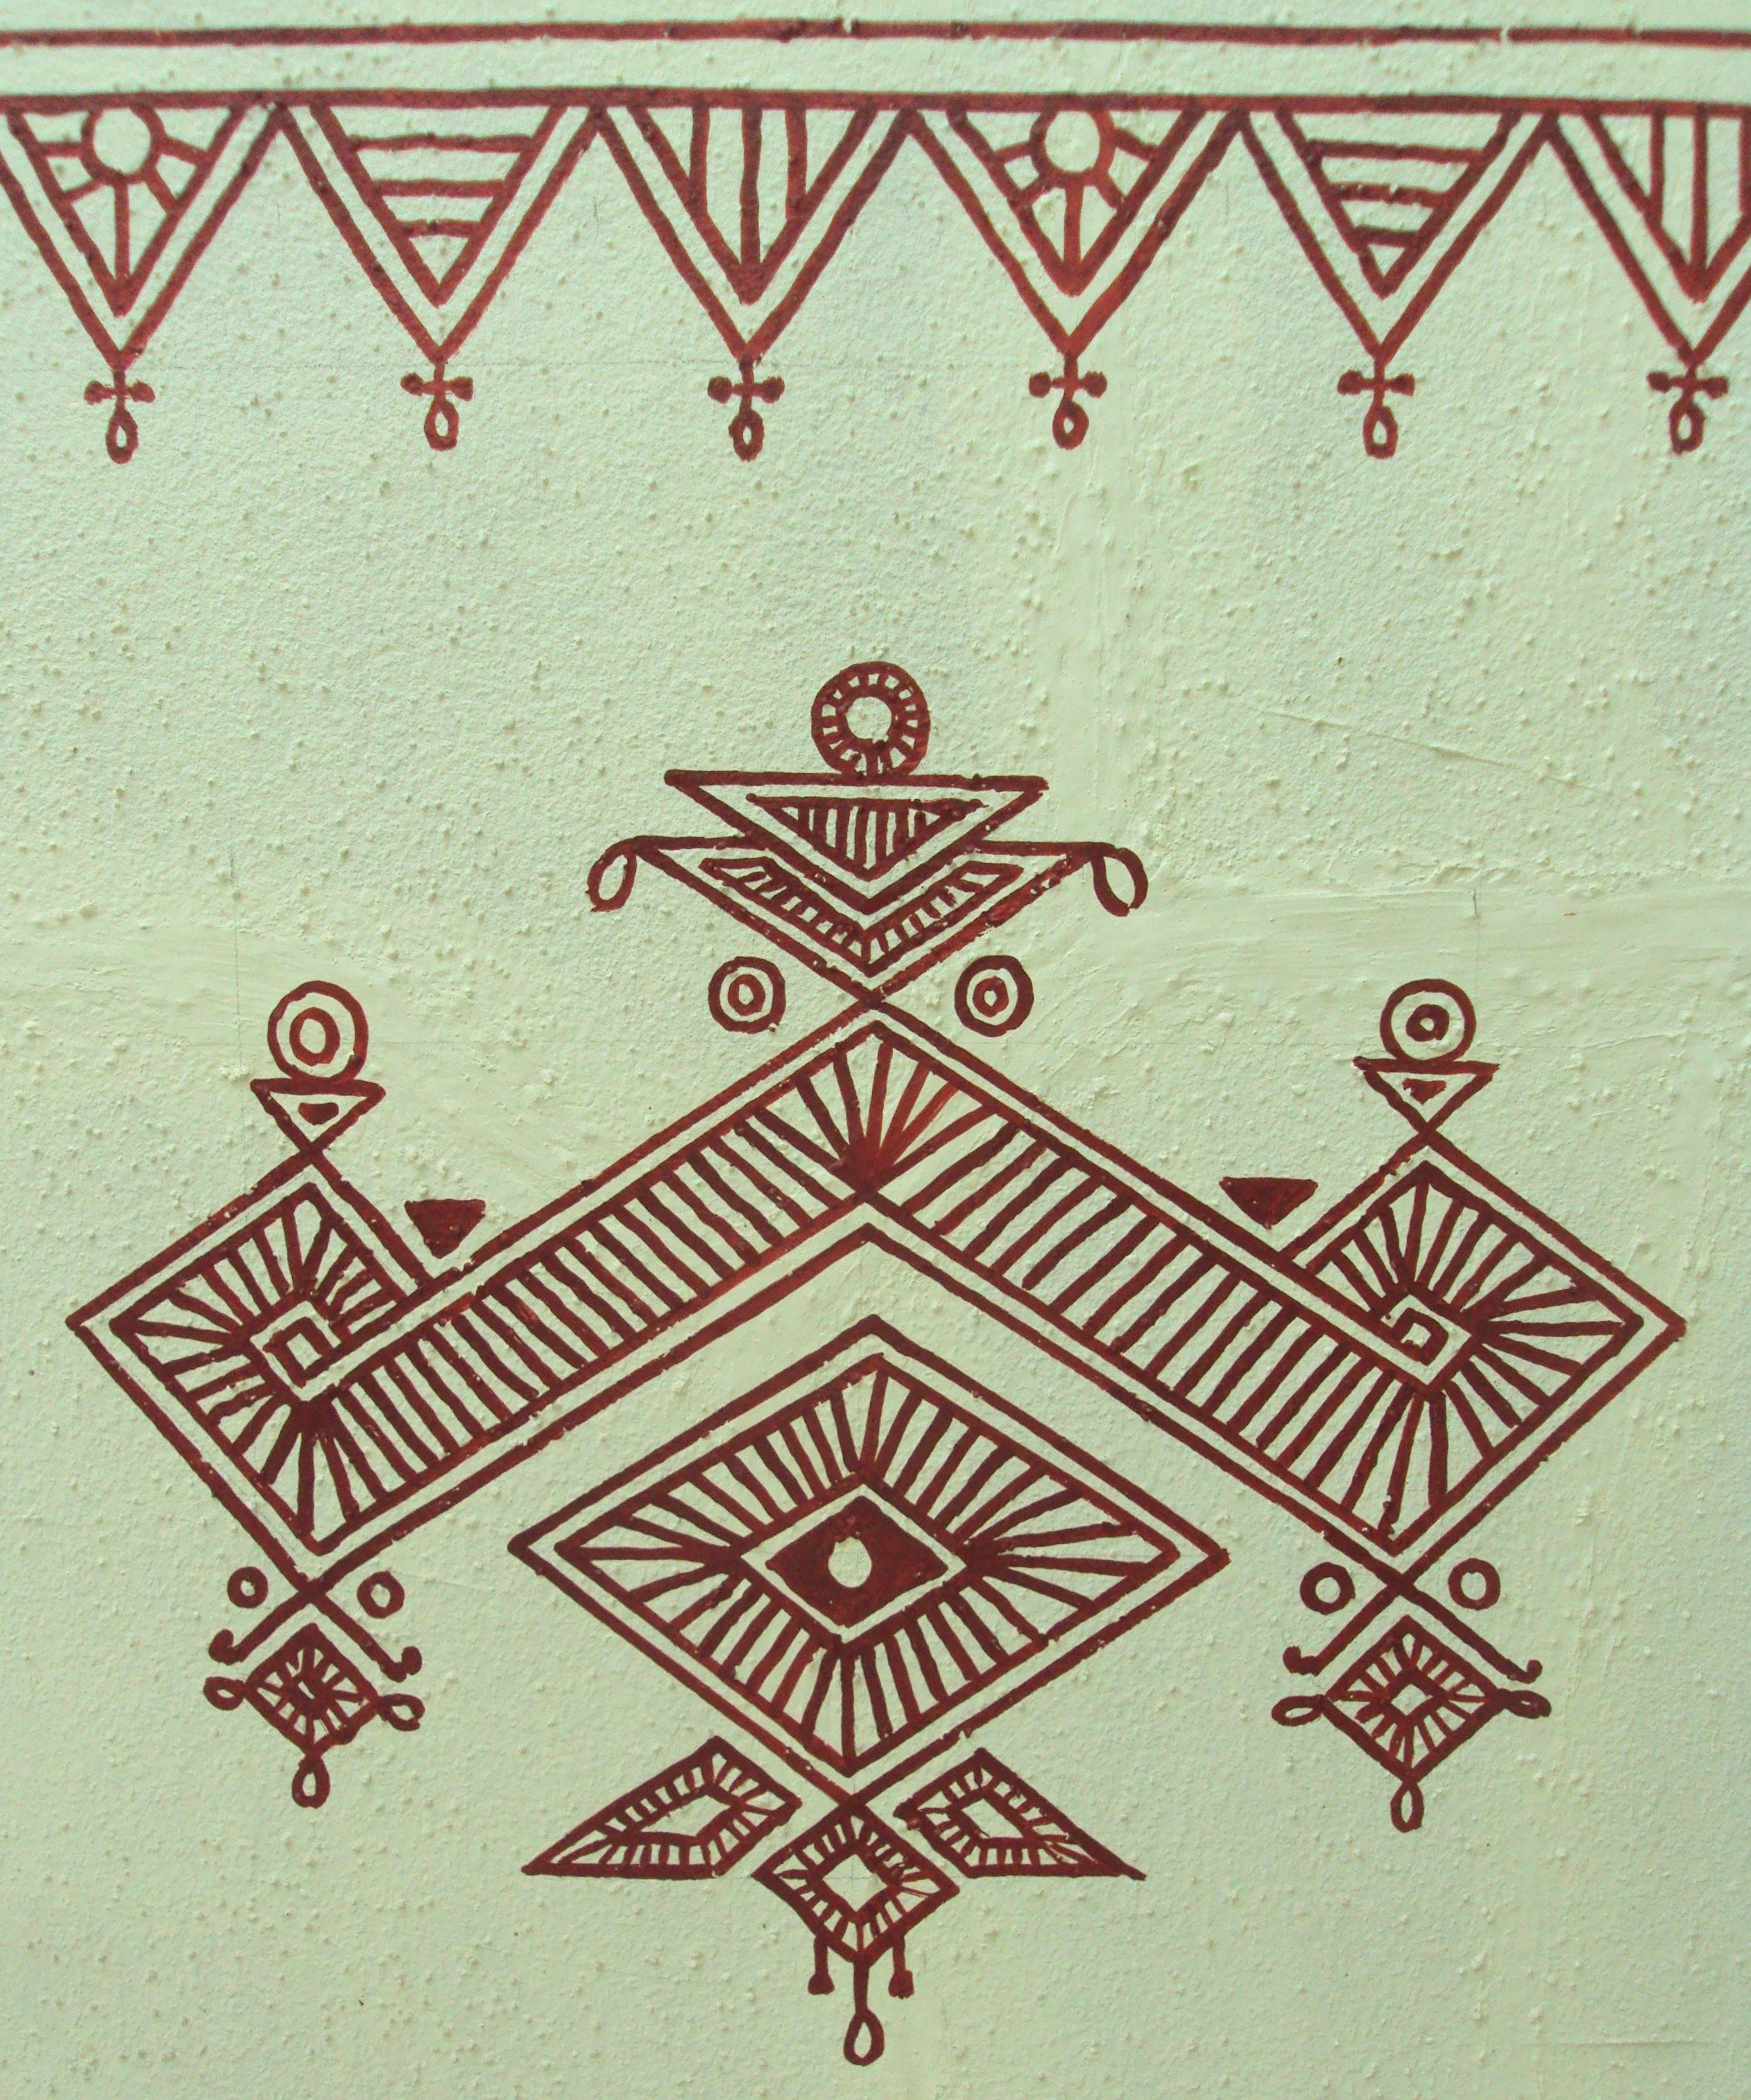 Bheenth Chitra – A Unique Indian Tribal Wall Art Style (Step Intended For Latest Thai Fabric Wall Art (View 2 of 15)